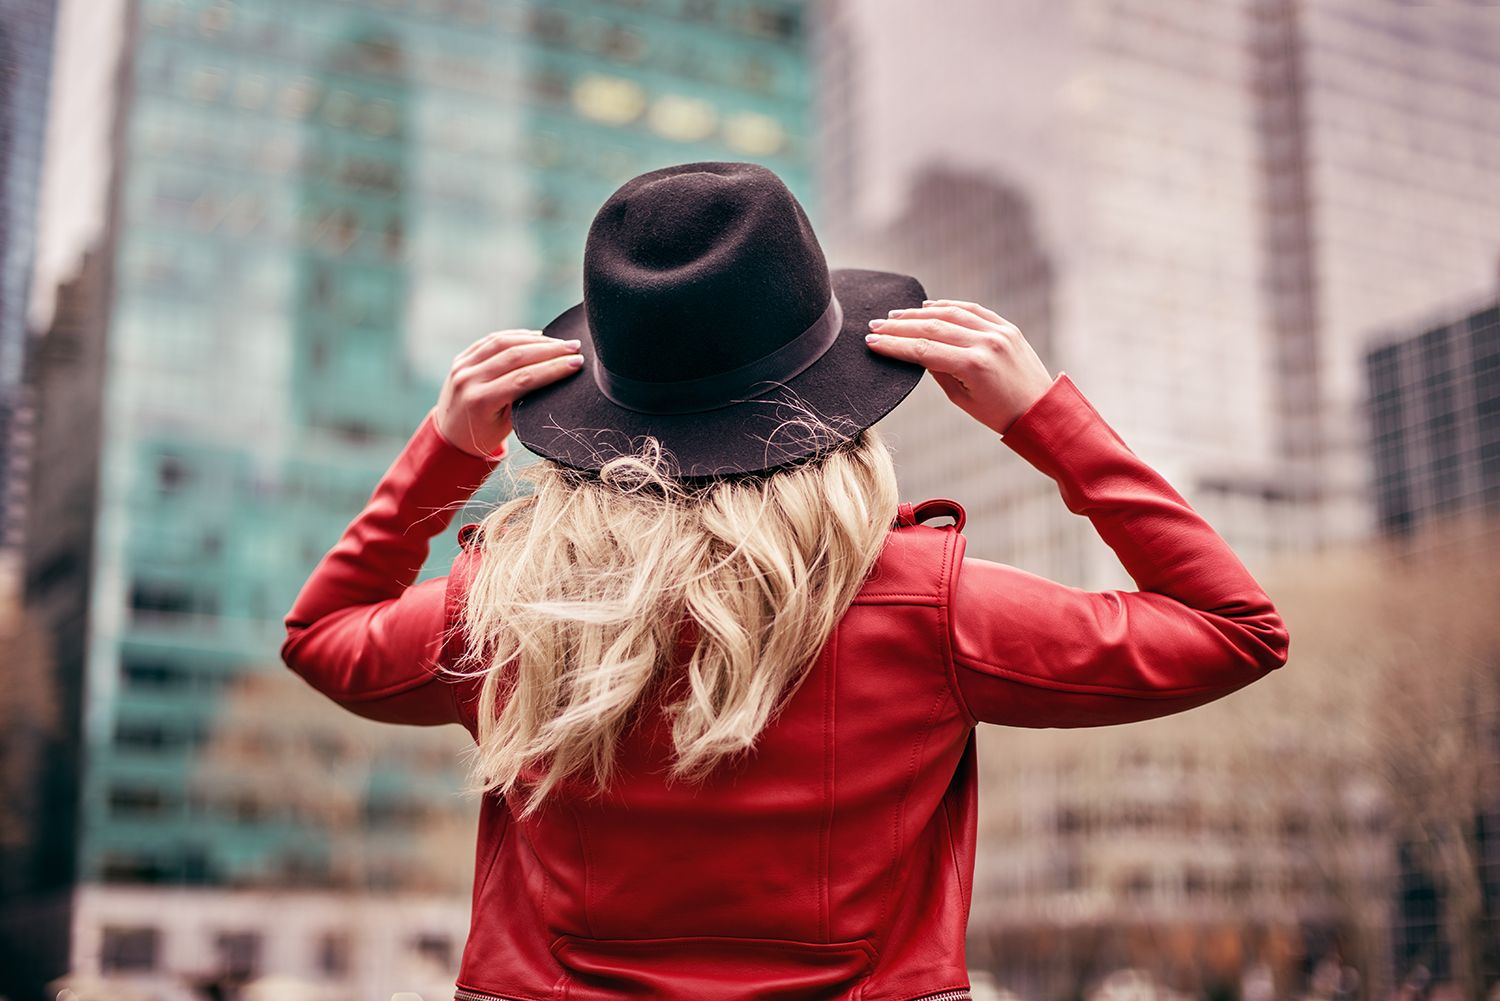 Woman in Red Coat Grabbing Her Hat